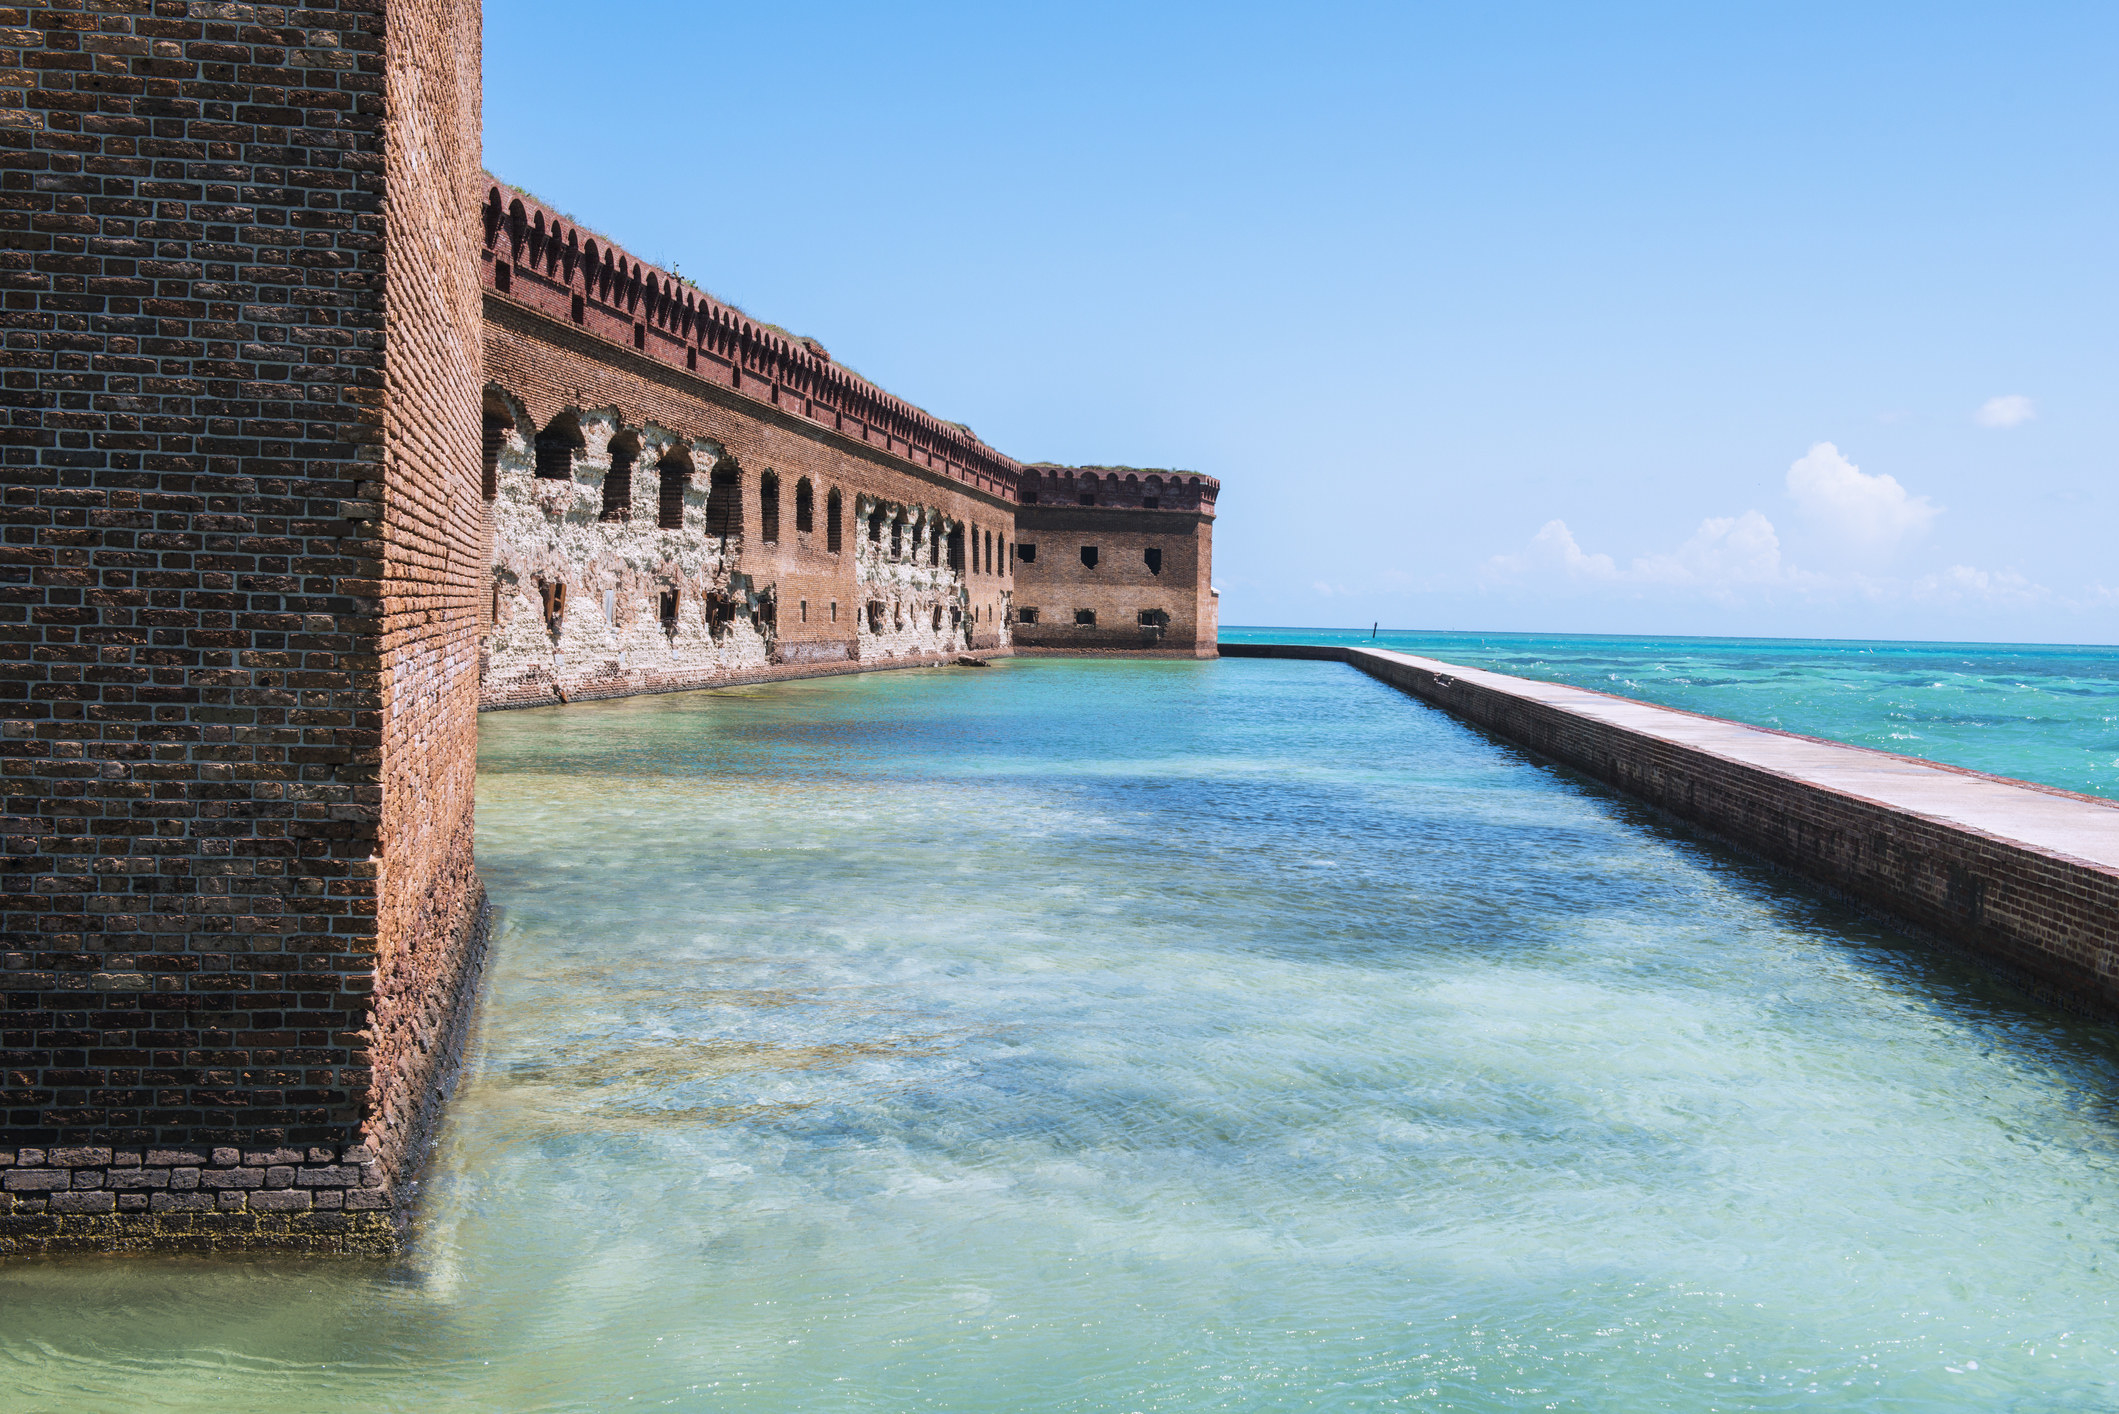 Clear, turquoise waters around a historic brick fortress